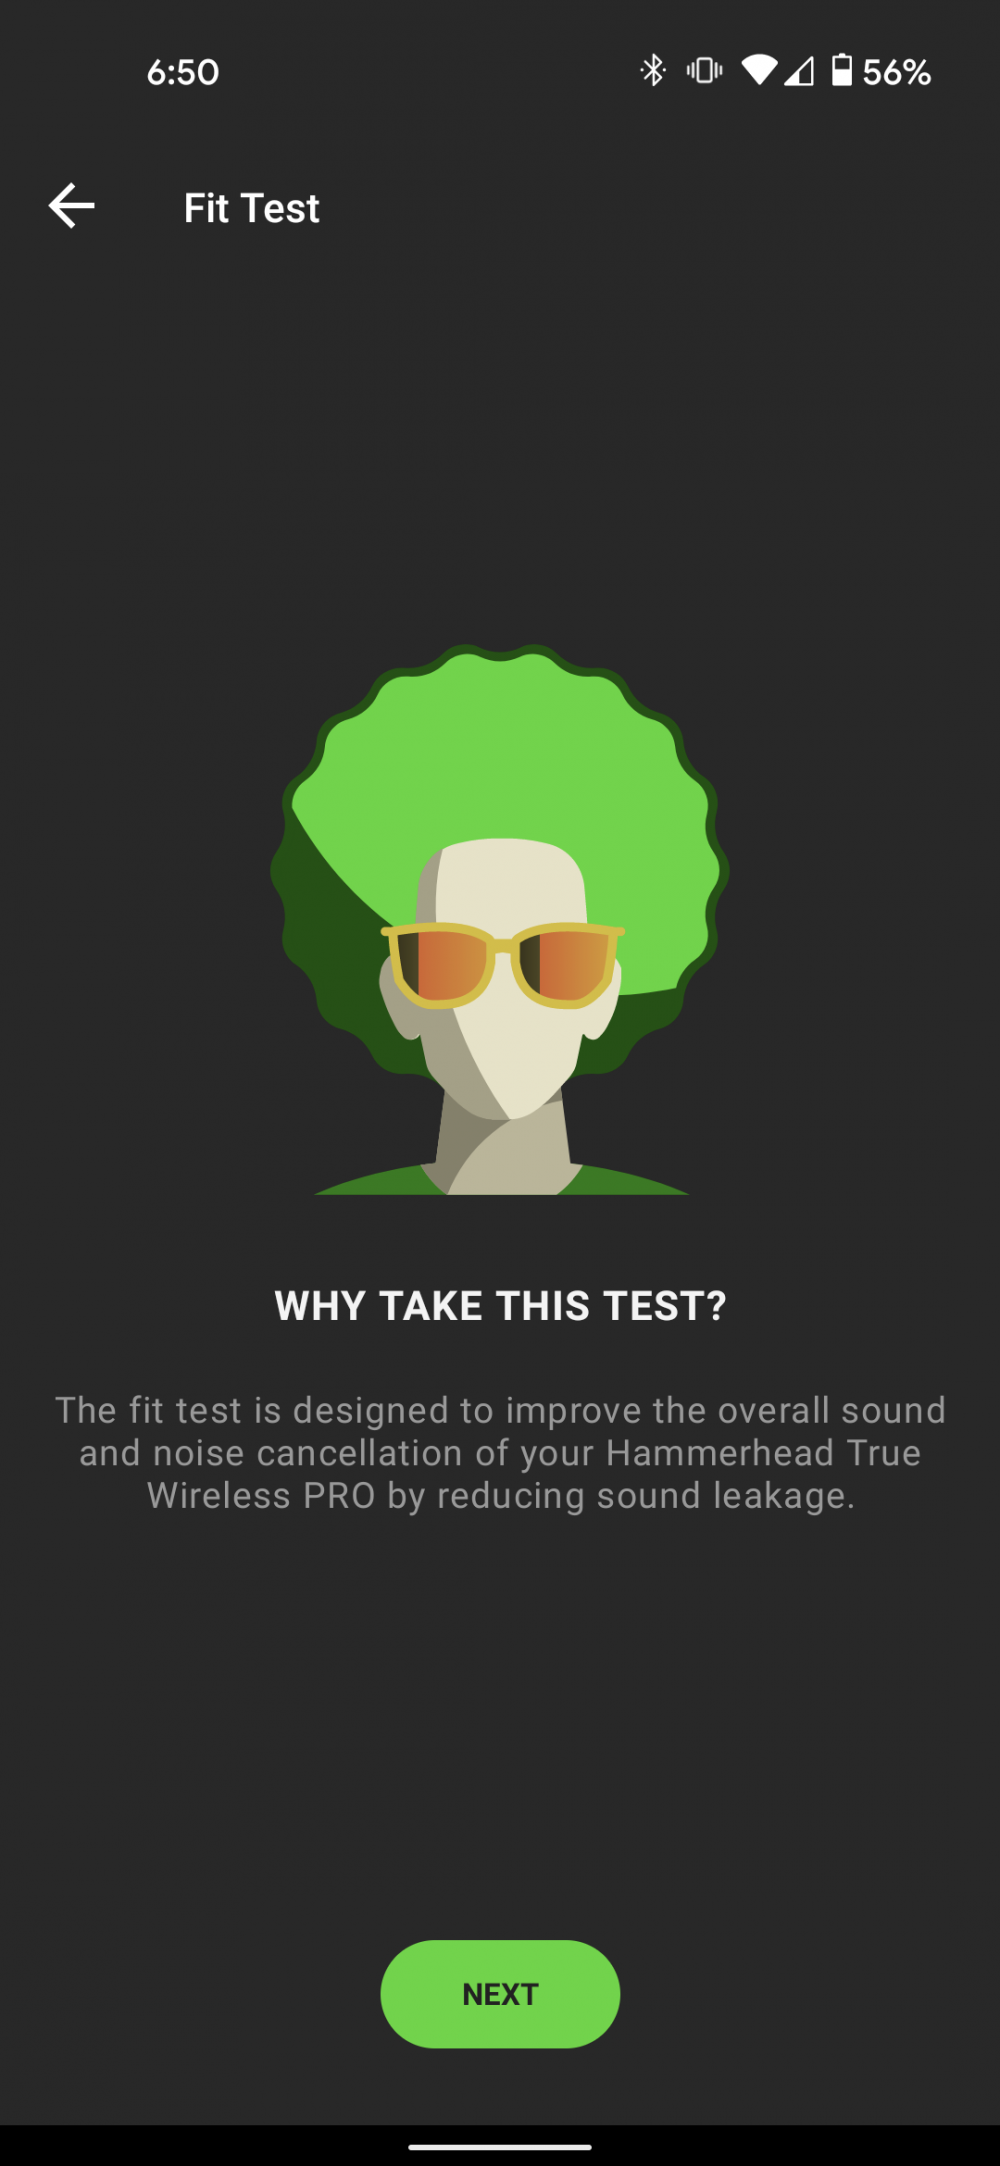 A screenshot of the fit test